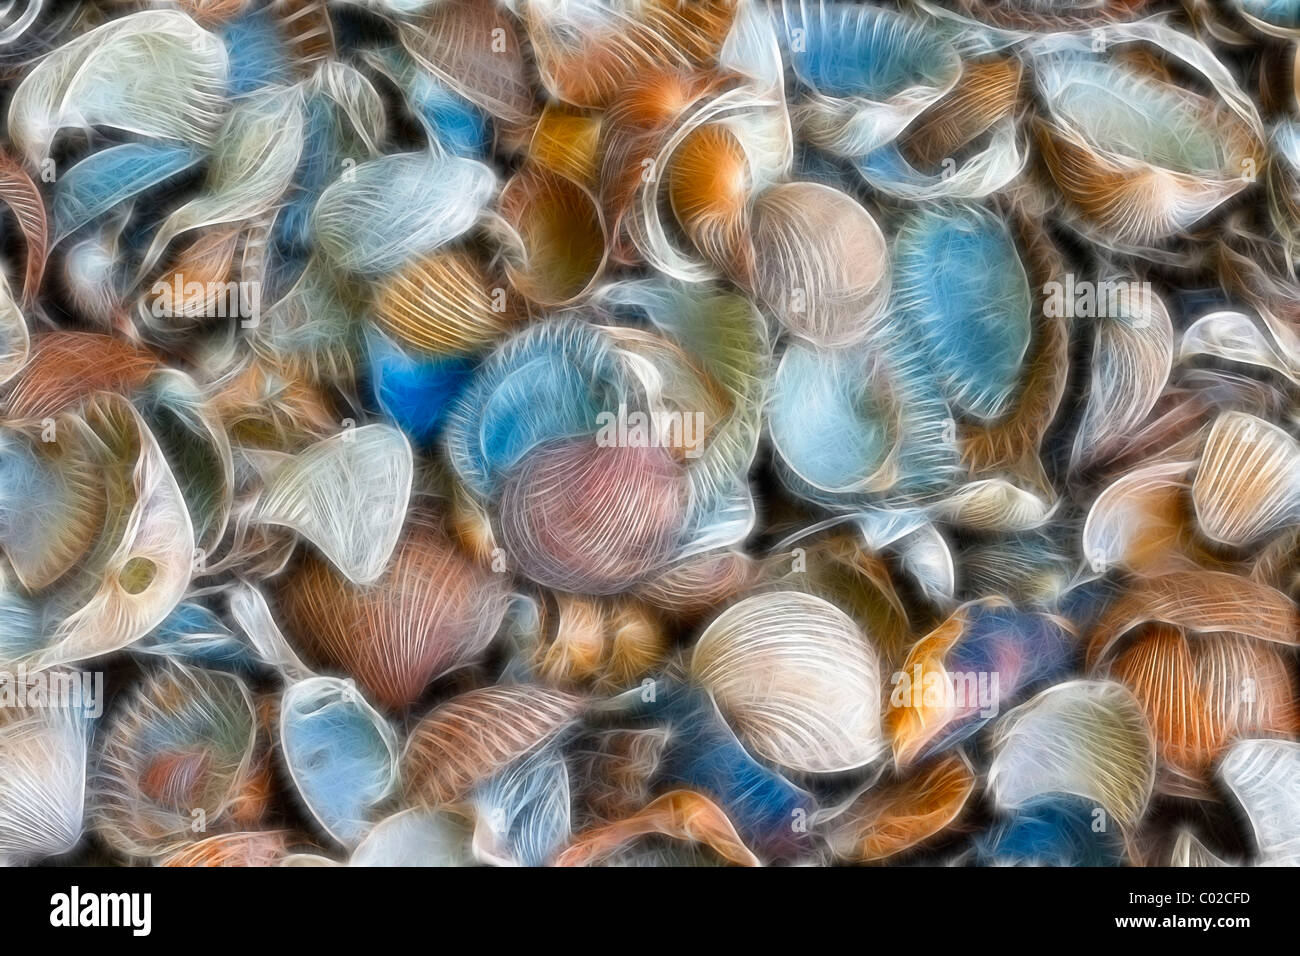 Texture, sea shells, filtered fractally - Stock Image